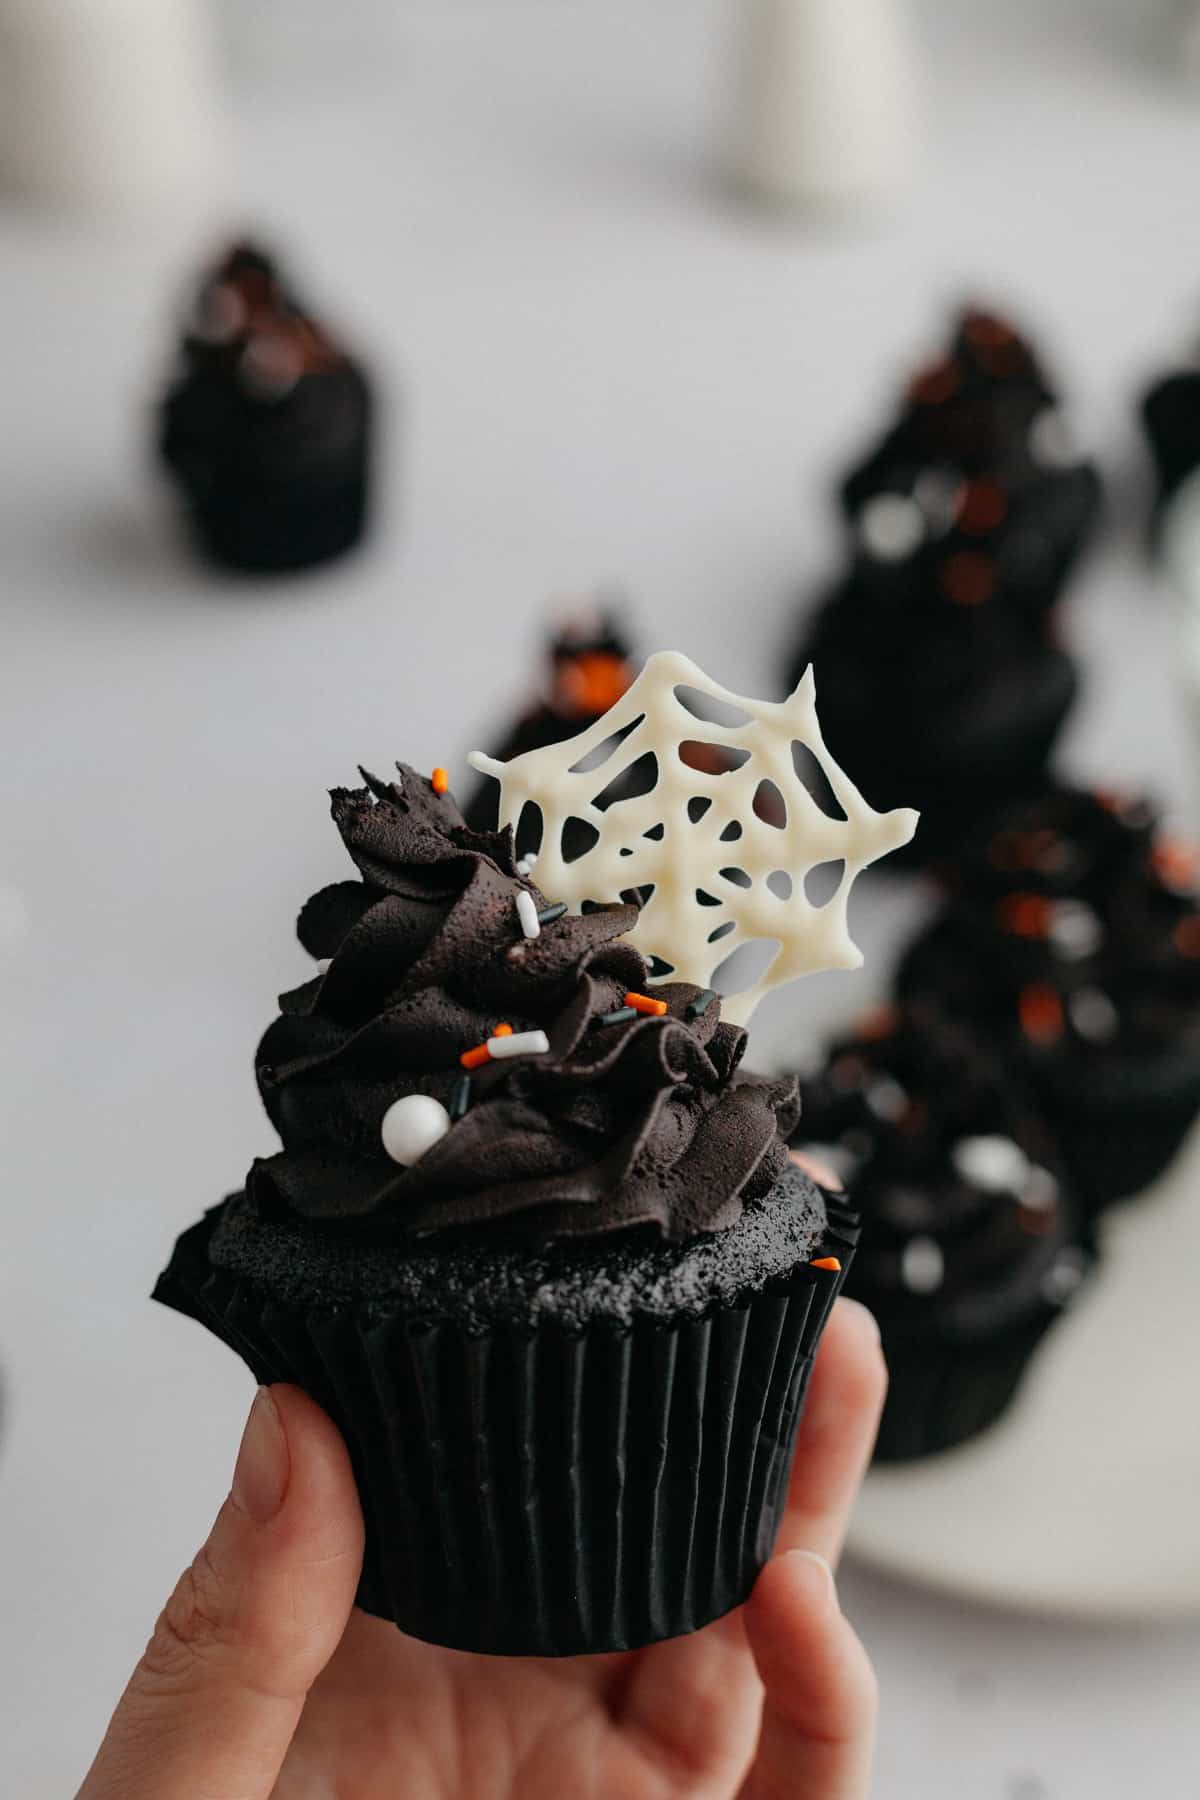 A hand holding a black velvet cupcake with a white chocolate spiderweb on top of the frosting.